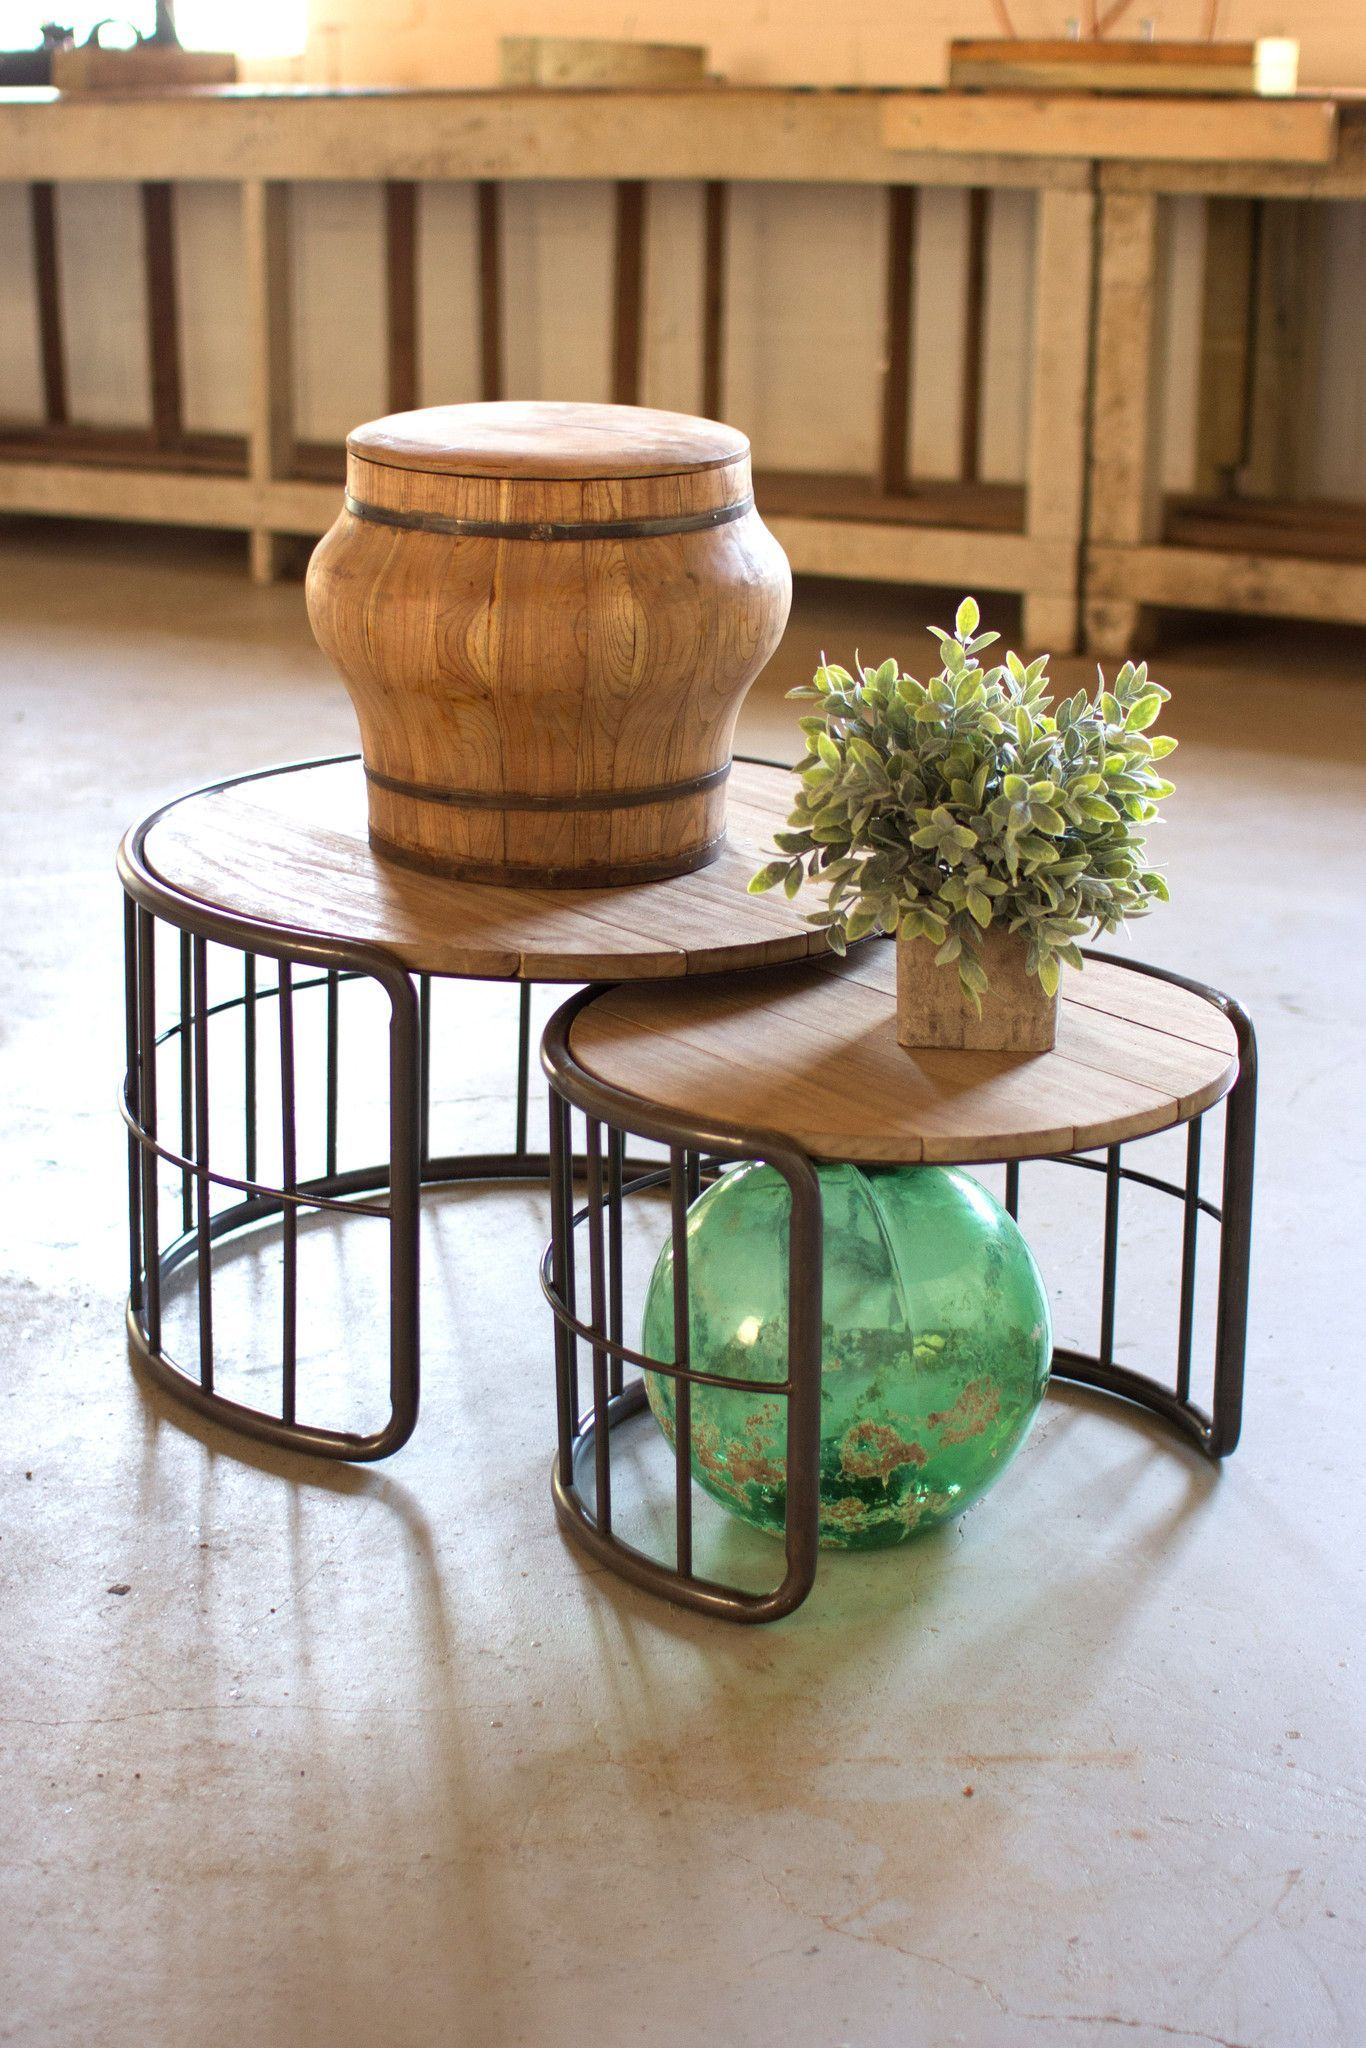 Nesting Round Coffee Tables With Slat Wood Top And Metal Tube Base Set Of 2 Coffee Table Nesting Coffee Tables Round Coffee Table [ 2048 x 1366 Pixel ]